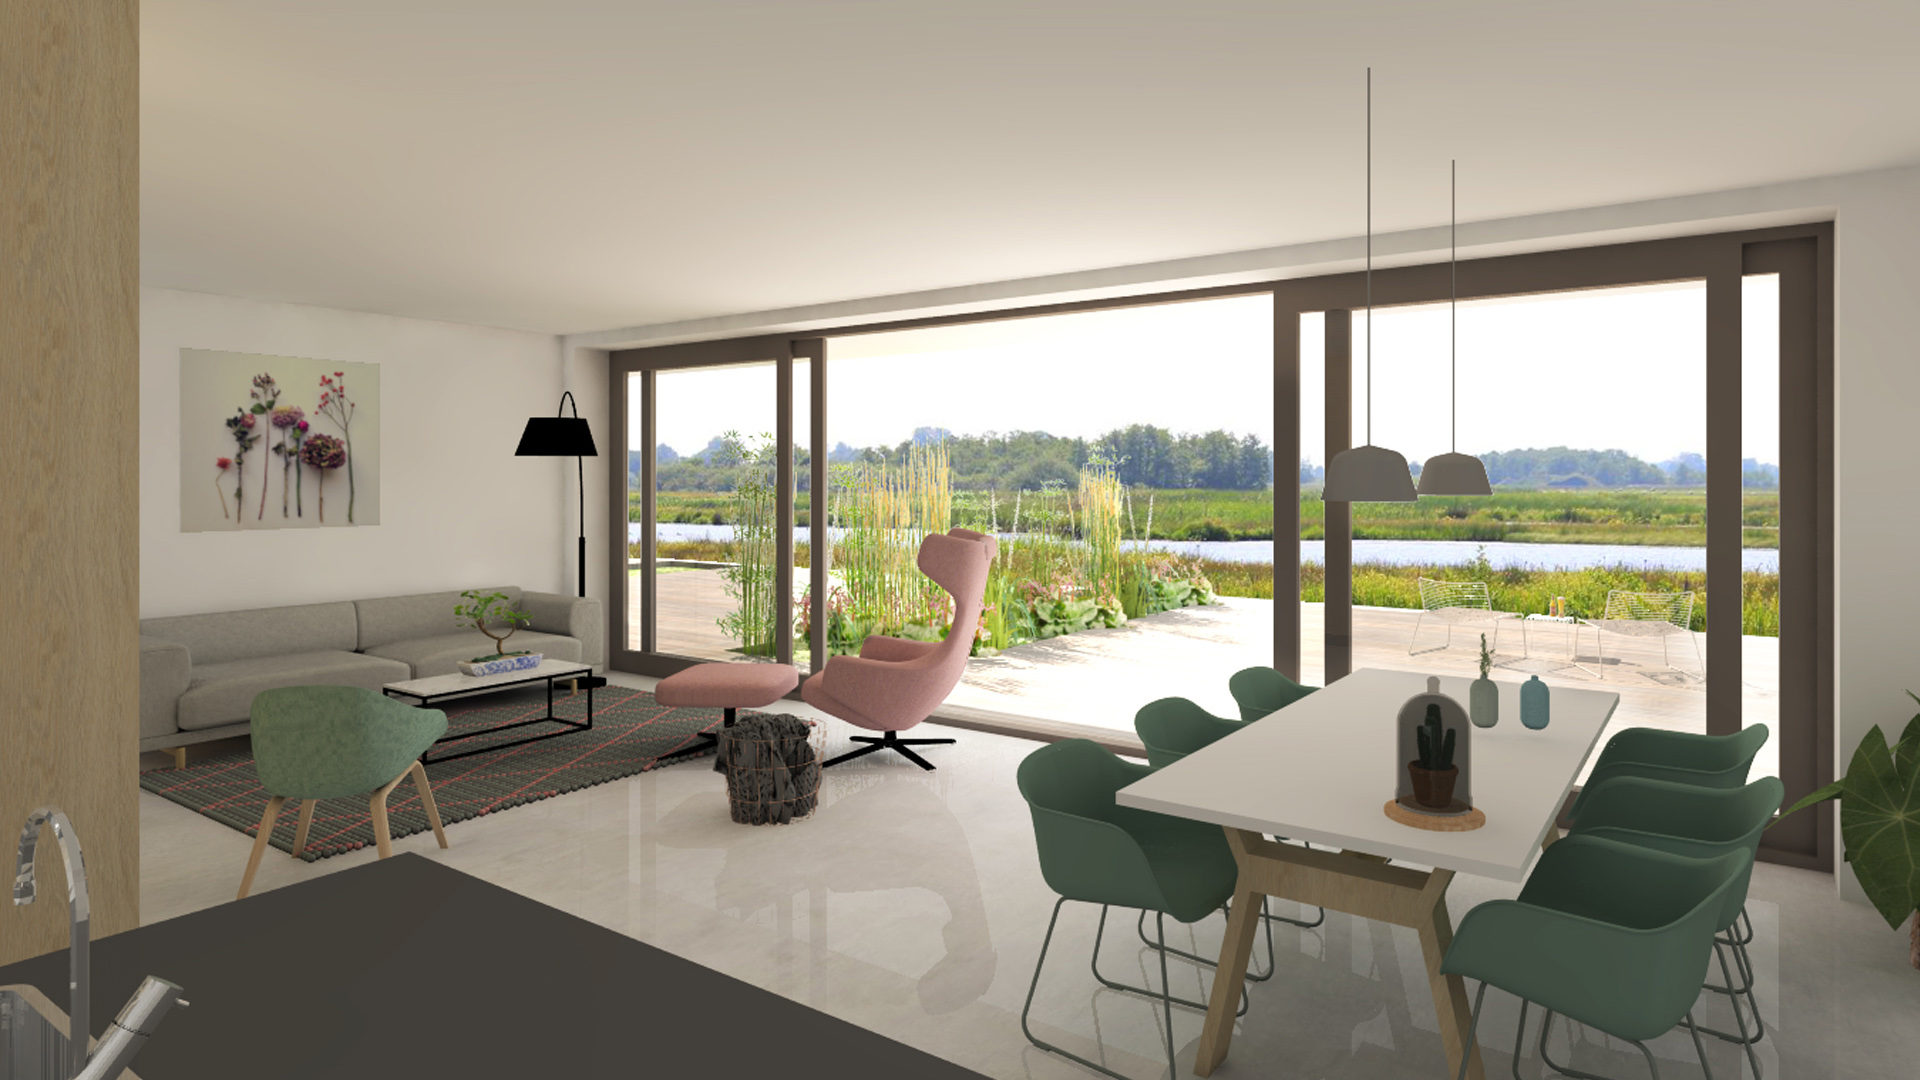 EVA_architecten_Parijsch_interieur1